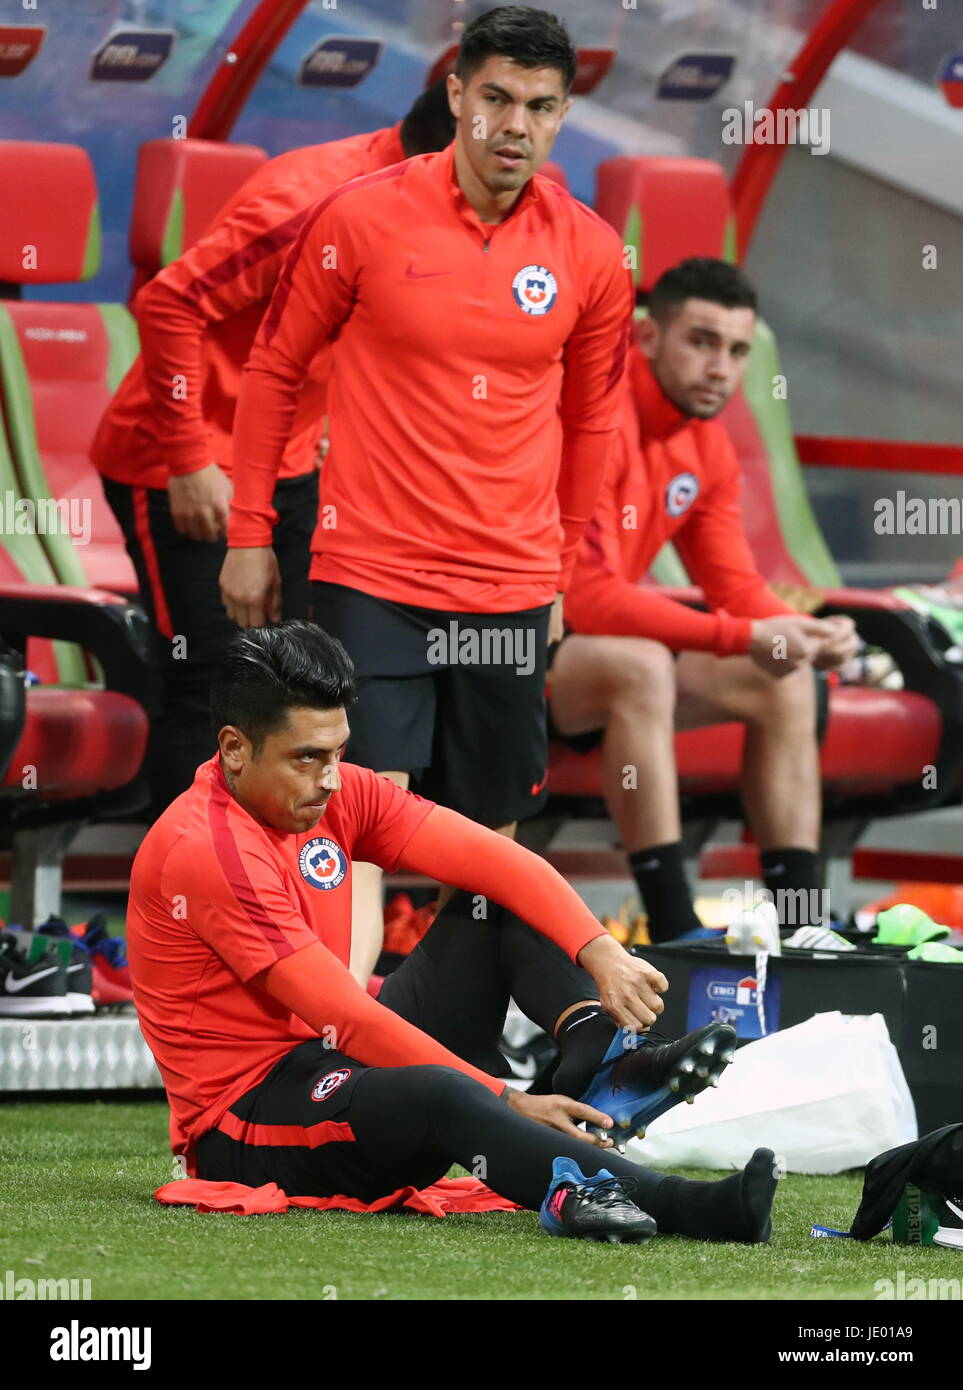 Kazan, Russia. 21st June, 2017. Felipe Gutierrez (front sitting) during a training session of the Chilean national - Stock Image